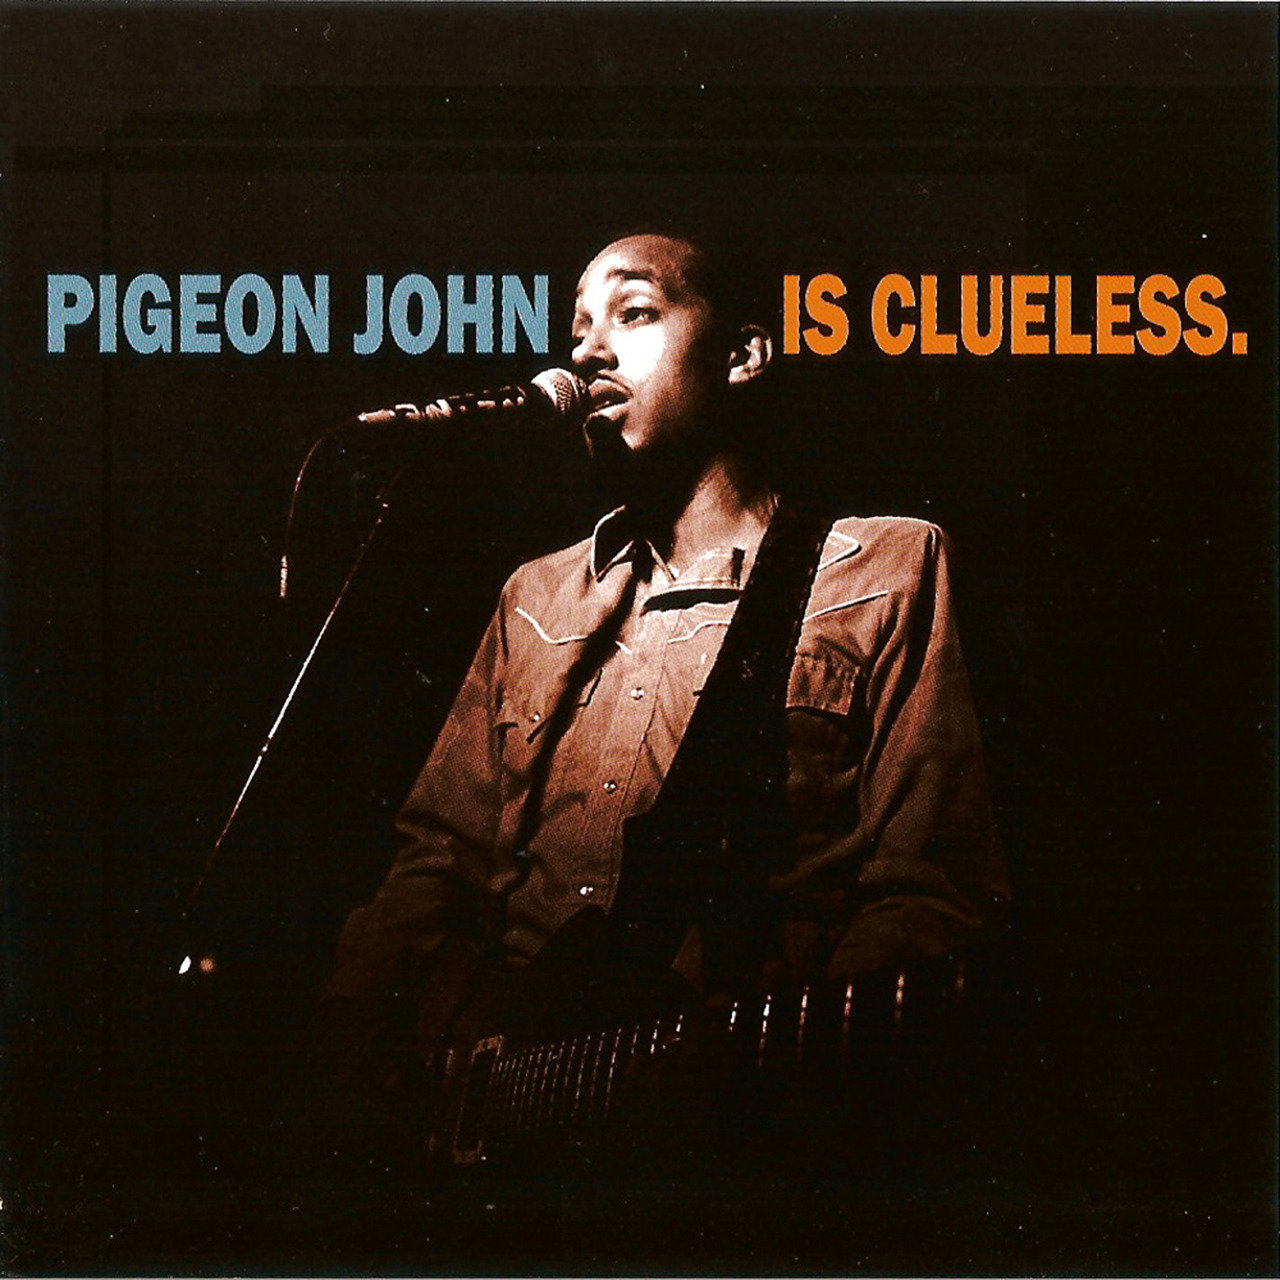 Pigeon john is dating your sister free download